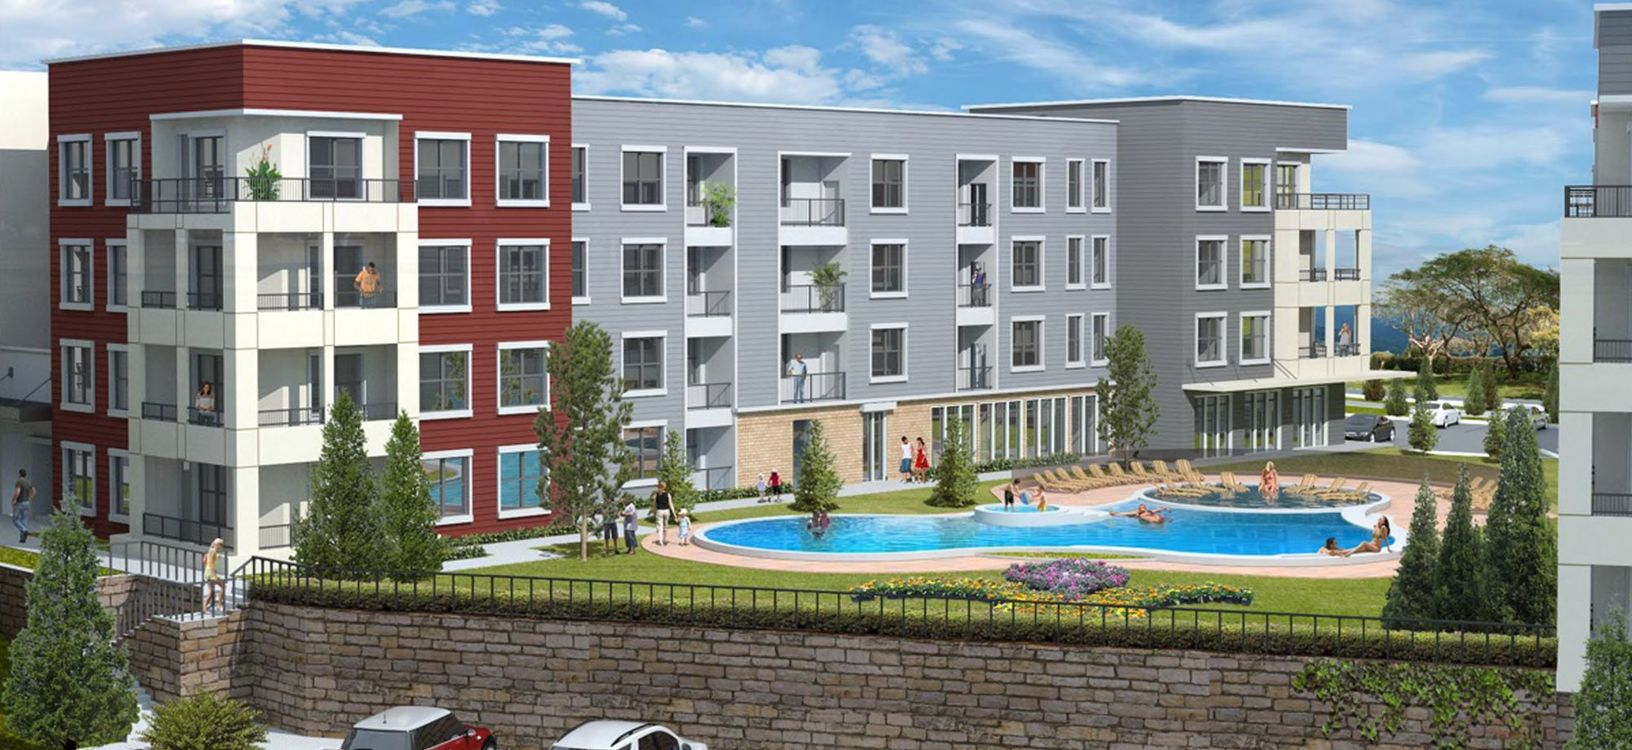 Exterior at Watermark at Chesterfield Village Apartments